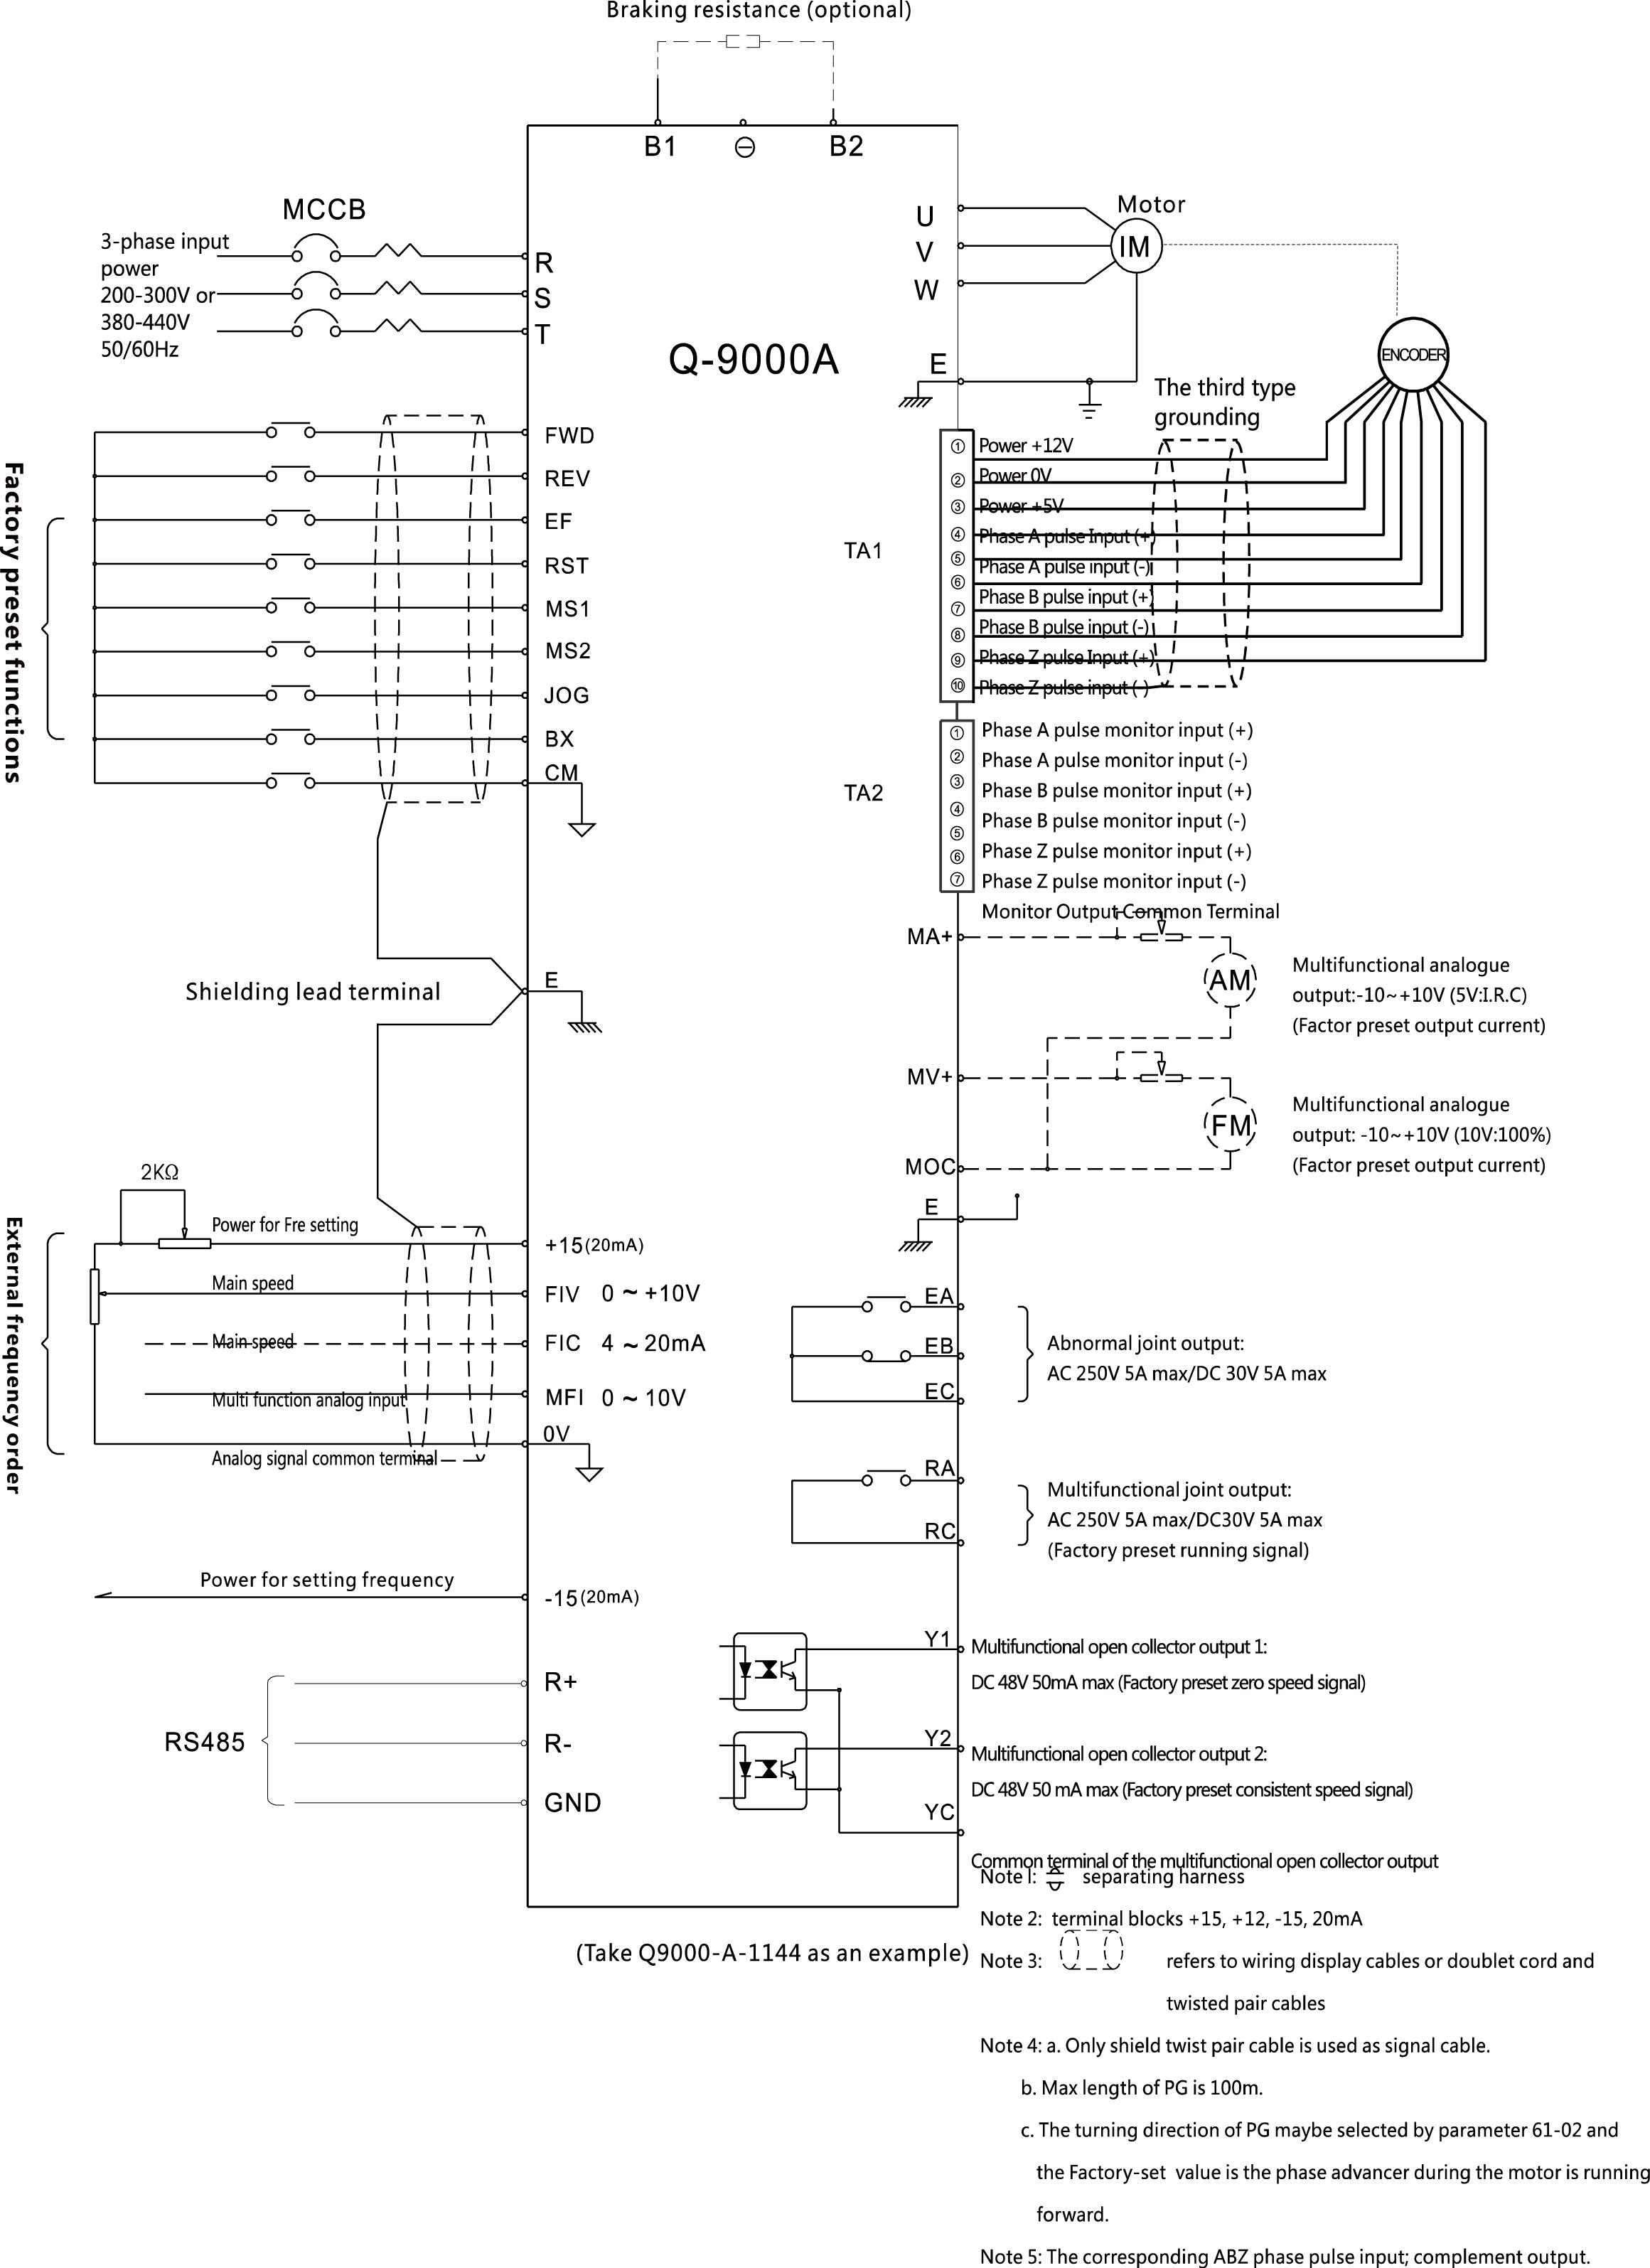 hight resolution of mitsubishi q plc auto electrical wiring diagram s u1eeda bi u1ebfn t u1ea7n qma q9000 qma